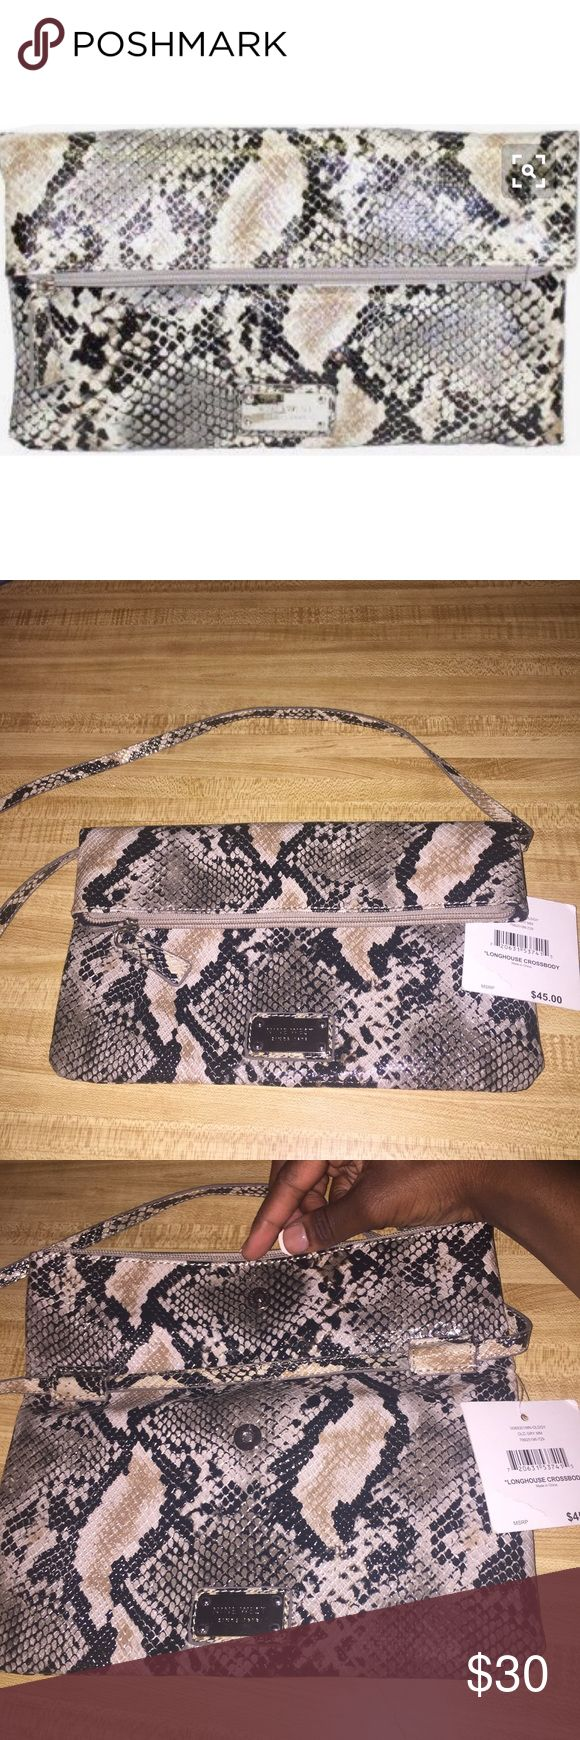 Snakeskin Crossover Bag This is the nine west longhouse crossover bag in color old gray. It's new with tags. Never used it but it's truly beautiful. The strap is removeable so it can also be used as a clutch. It's in perfect condition, open to offers 😊             Search Tags: Betsey johnson, kate spade, forever 21, f21, jessica simpson, vs pink, victoria's secret, juicy couture, dooney bourke, coach, michael kors, old navy, american apparel, urban outfitters, leather, monogram, purse…